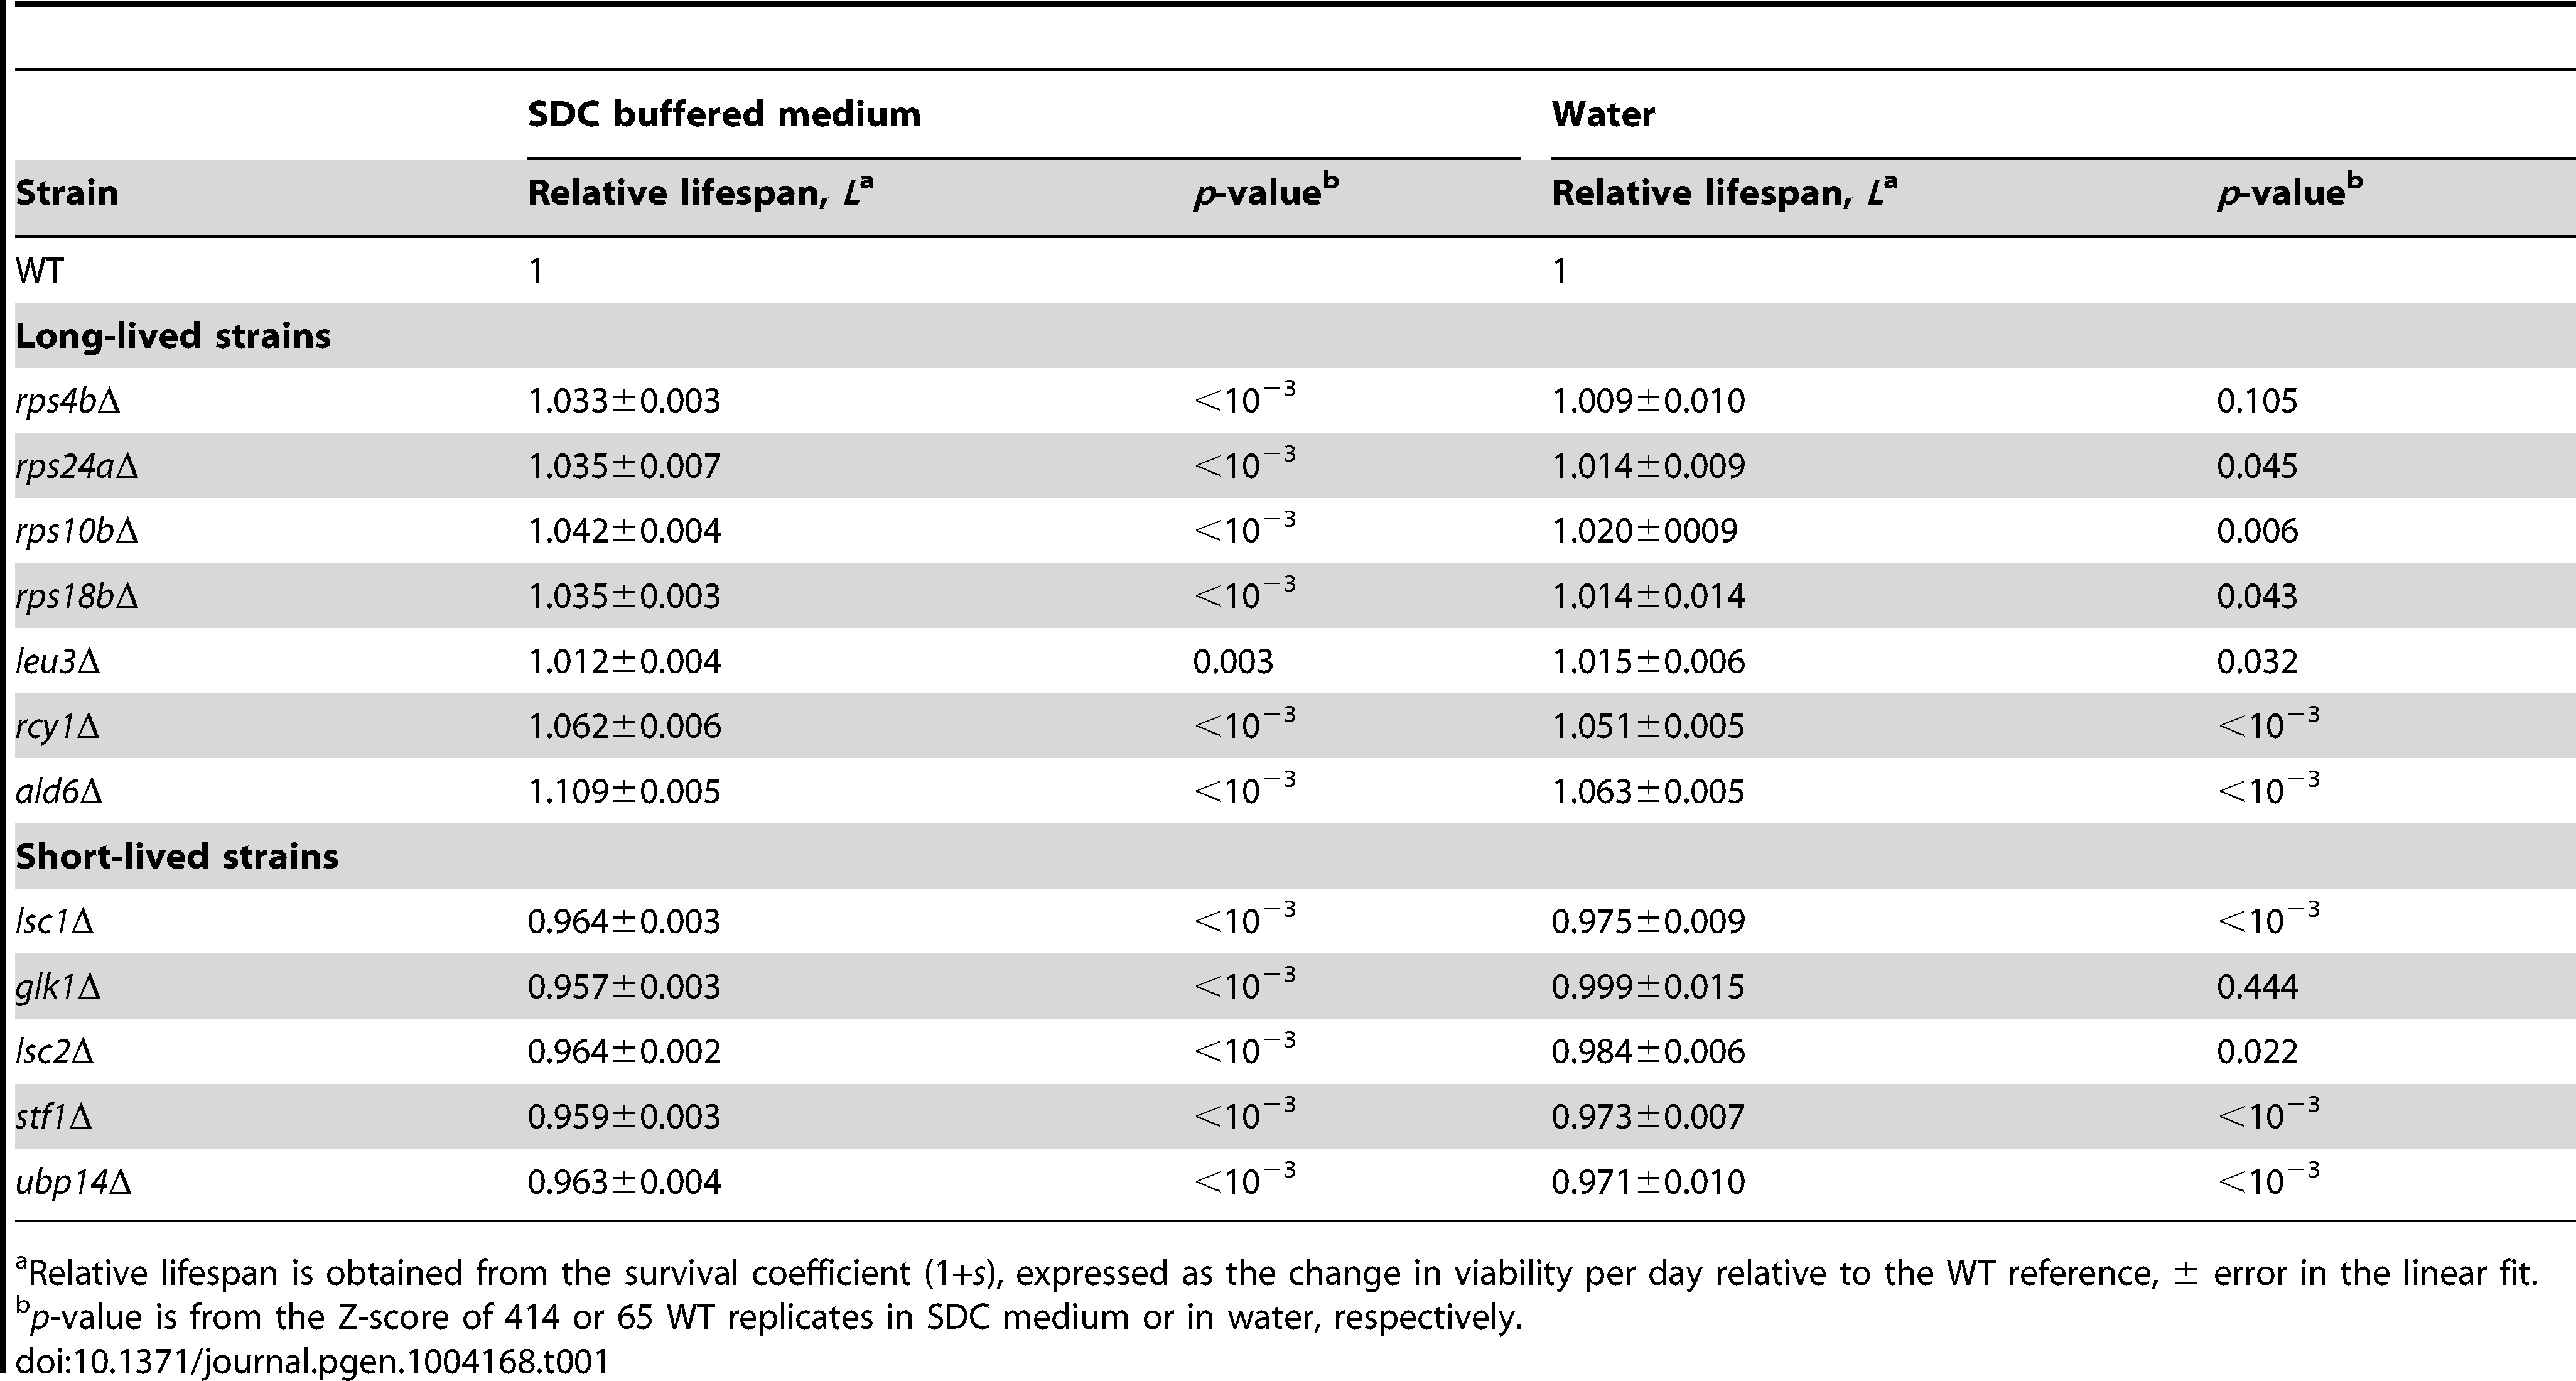 Chronological-lifespan effects of strains aged in SDC medium and in water.